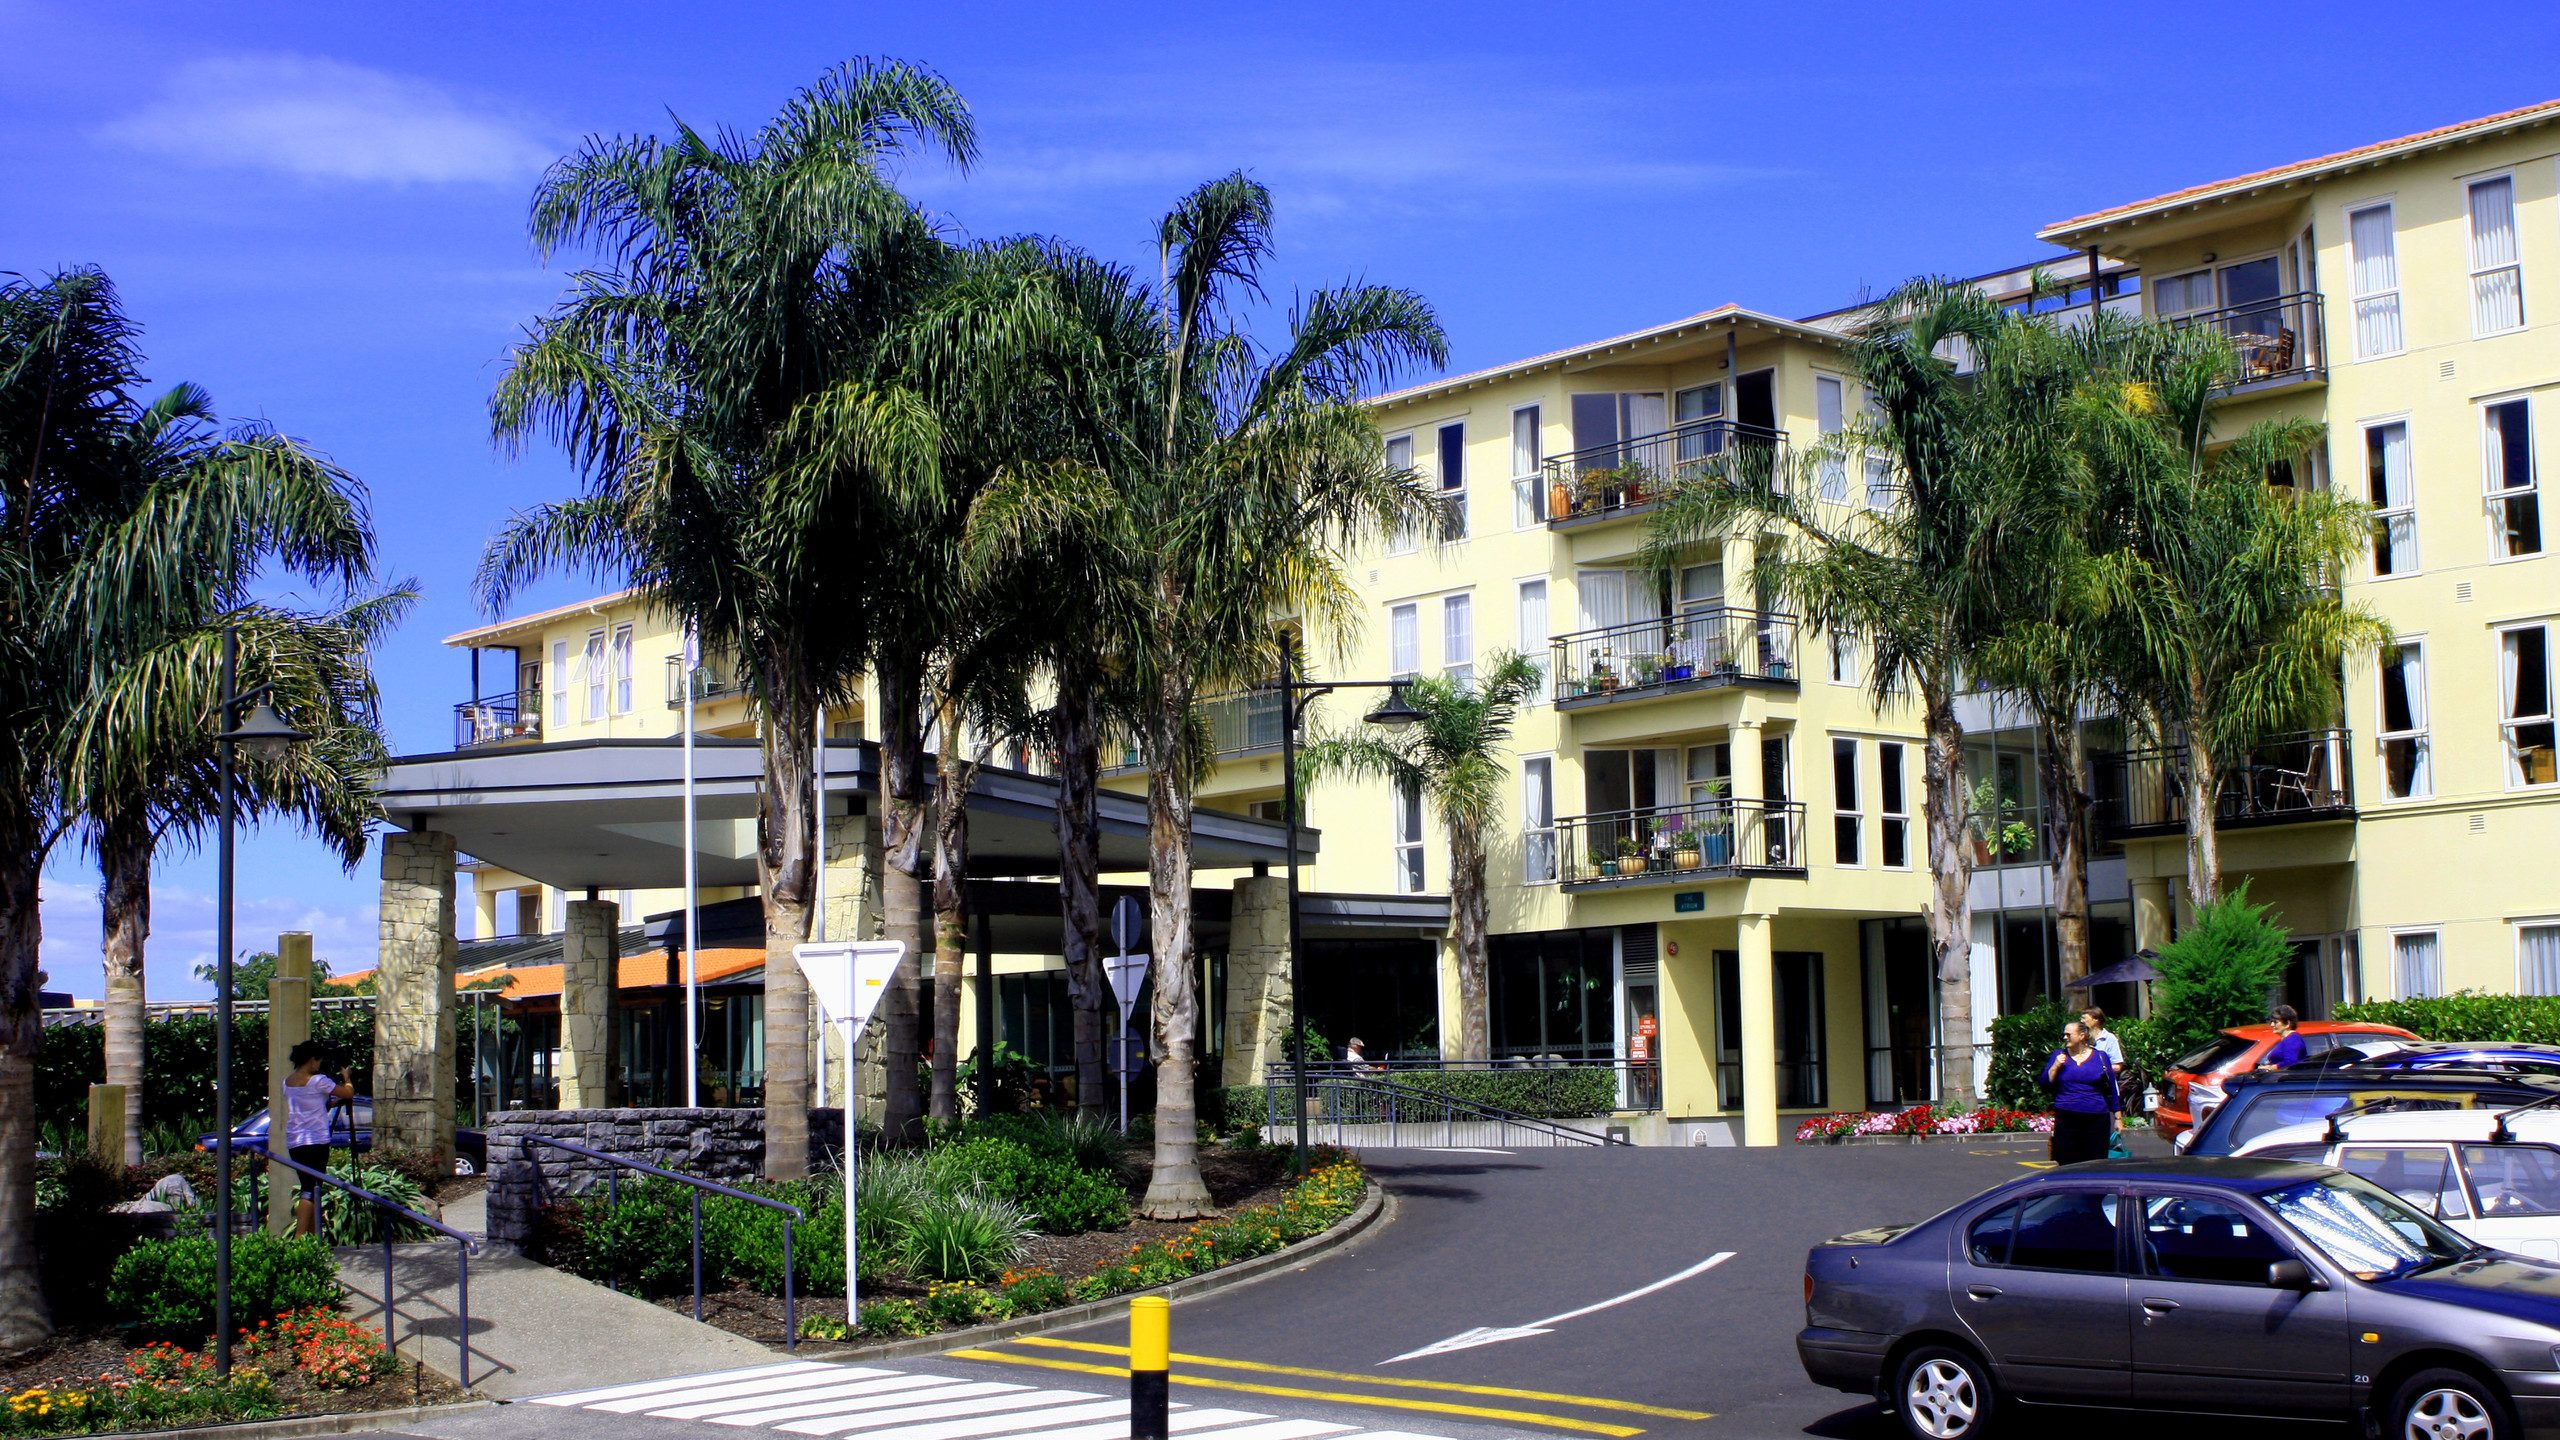 Waitakere Gardens Retirement Village